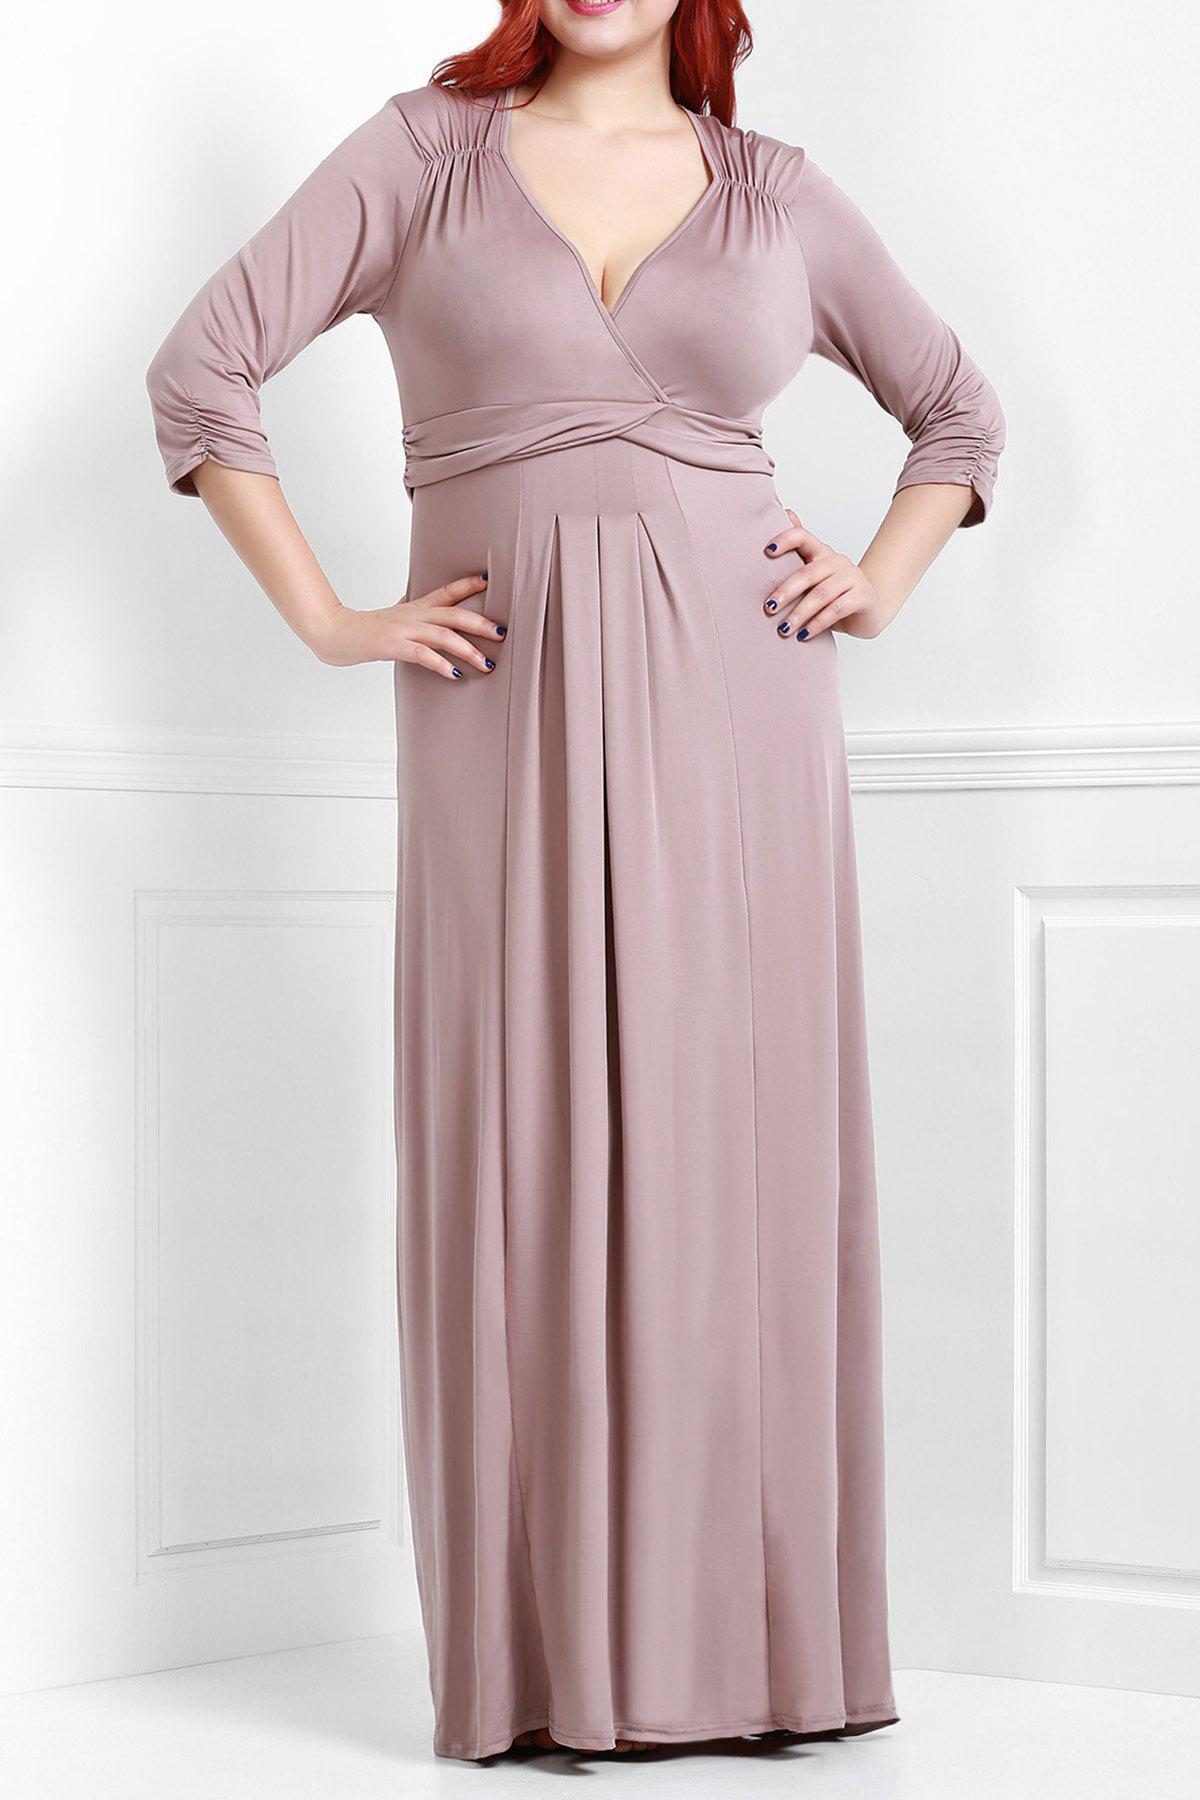 Surplice Empire Waist Maxi Dress - COFFEE 3XL